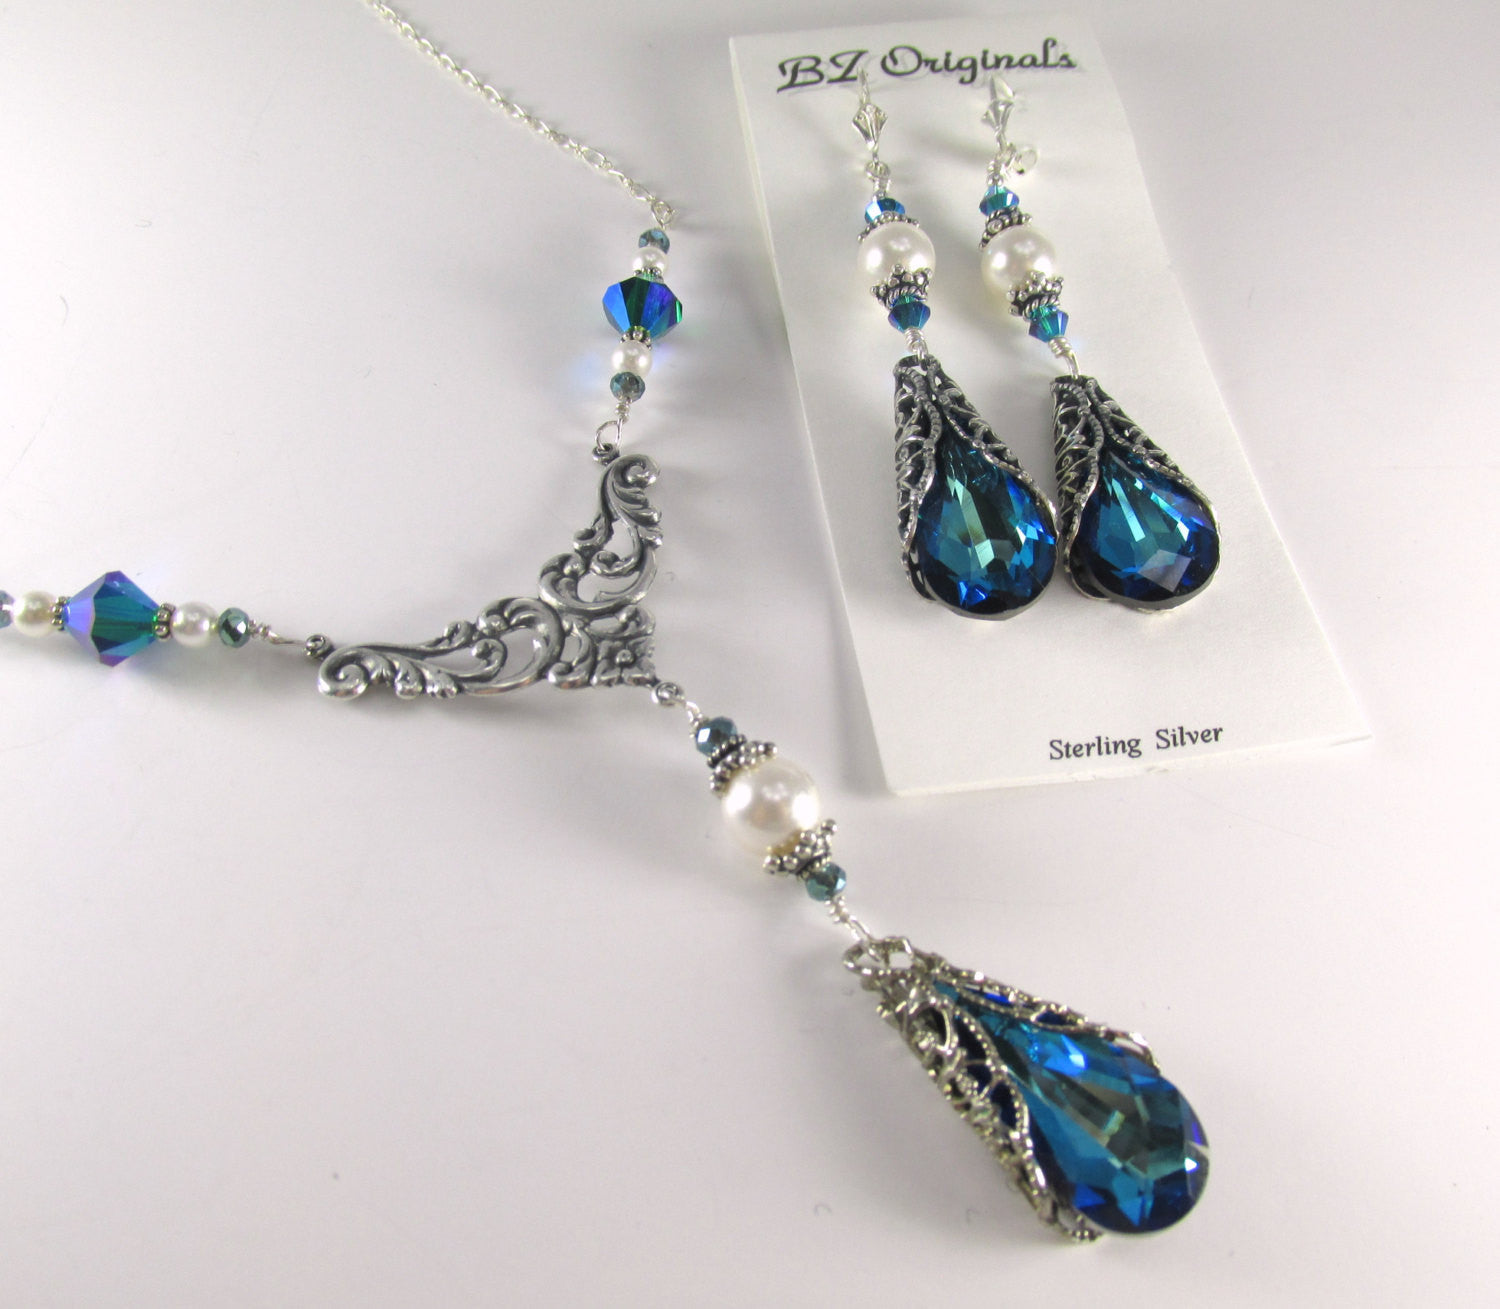 Earrings in Bermuda Blue Silver Filigree Swarovski Teardrops with Swarovski White Pearls and Crystals on Sterling Silver Wires - Odyssey Creations